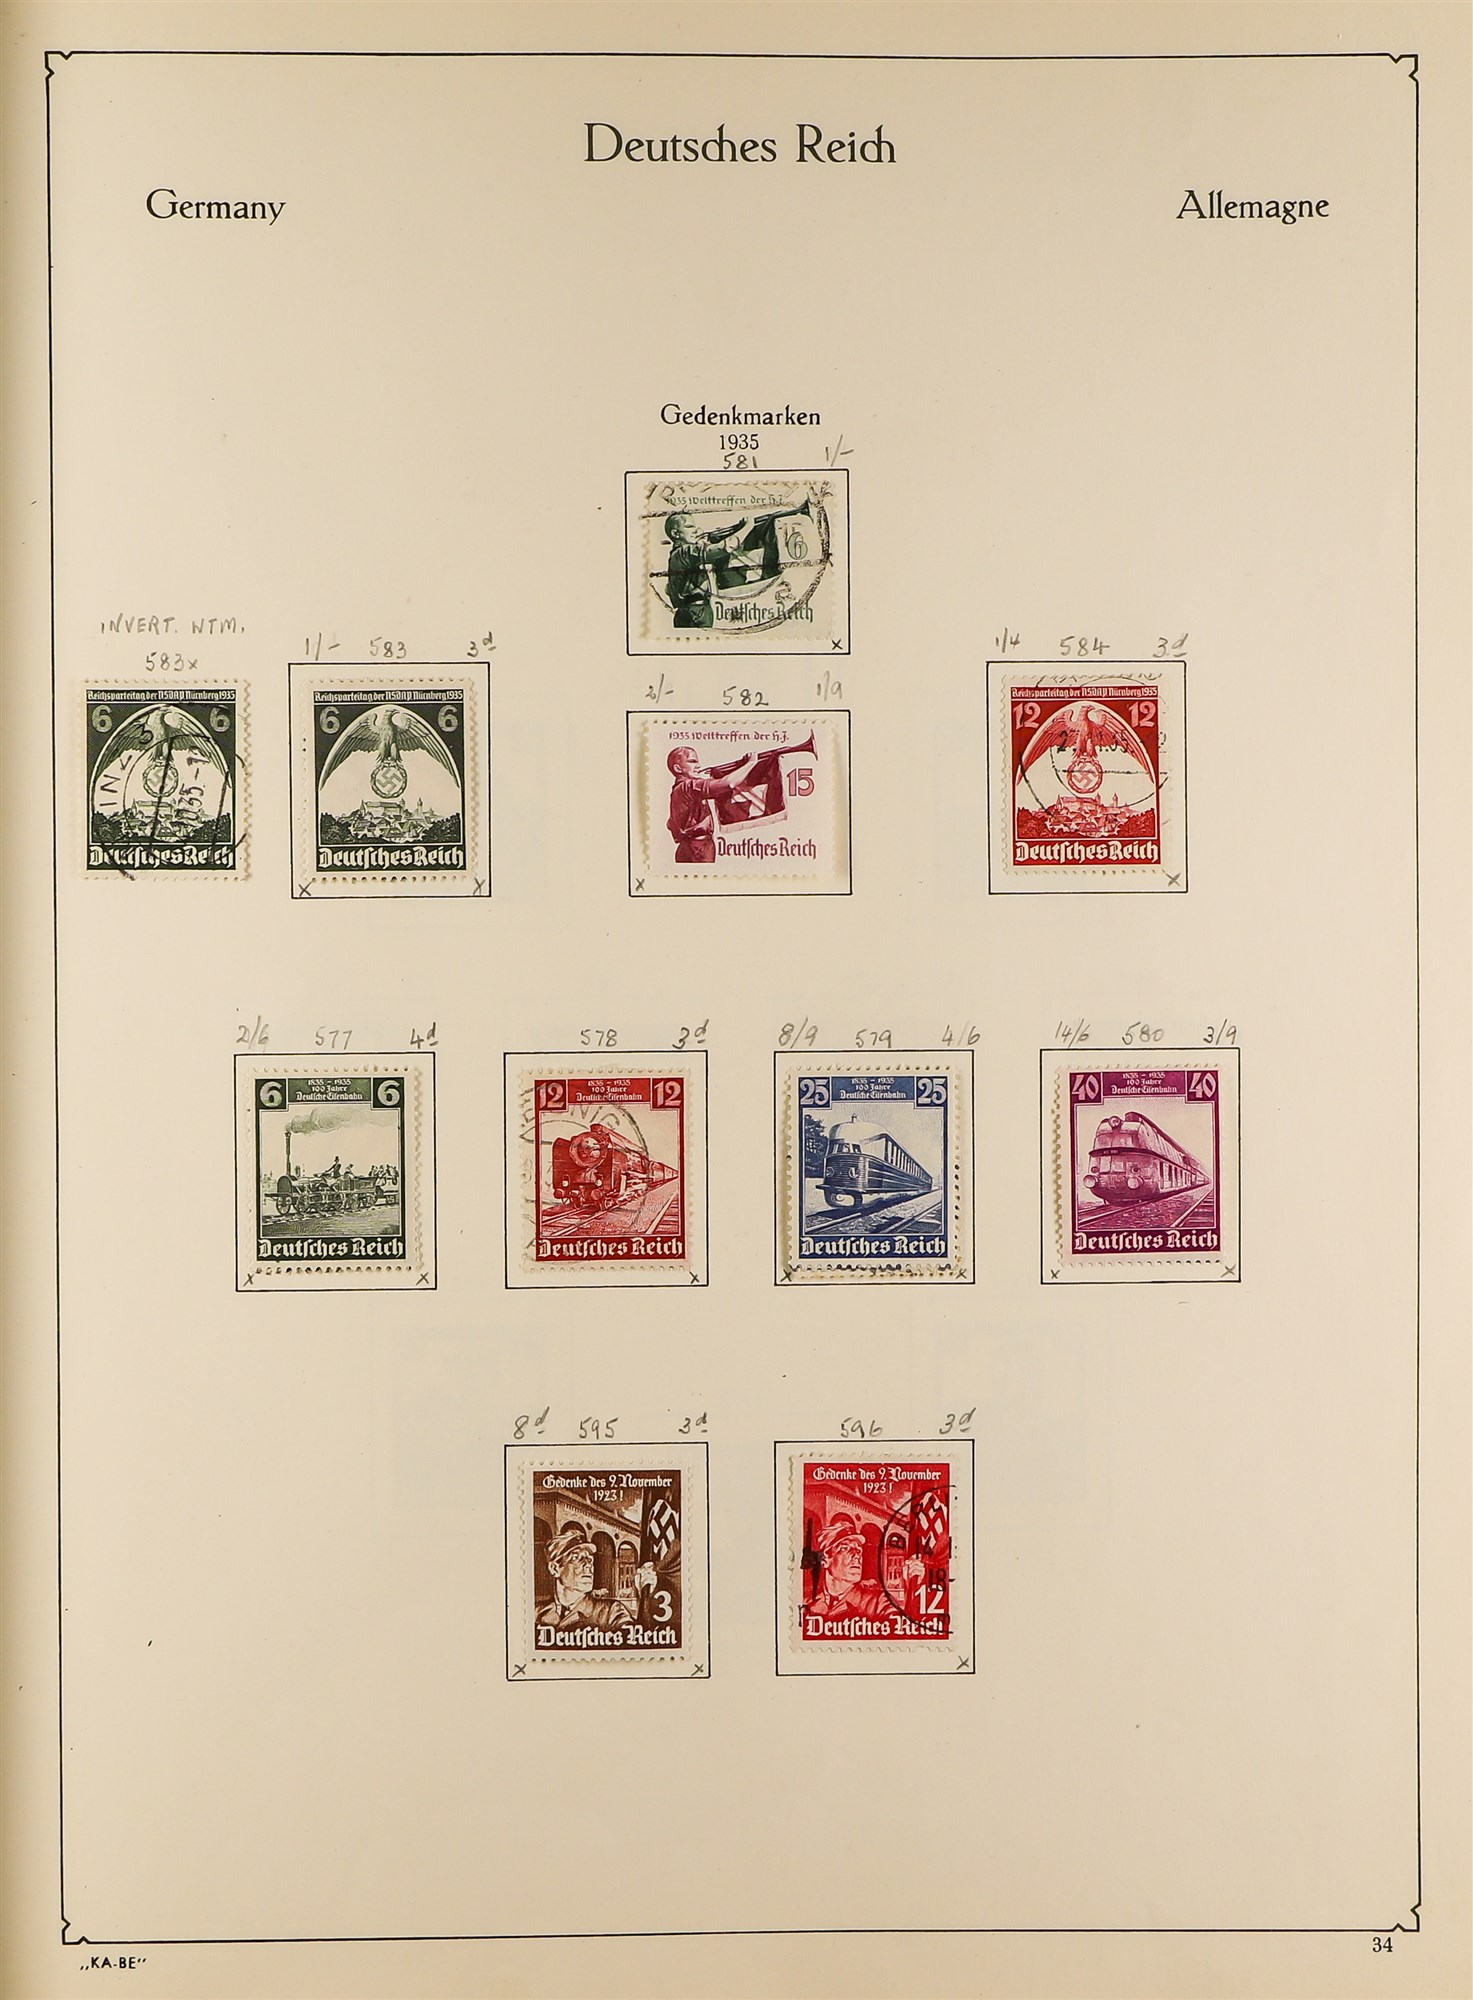 COLLECTIONS & ACCUMULATIONS FRANCE, GERMANY, SWITZERLAND IN TWO LARGE KA-BE ALBUMS with useful - Image 2 of 12